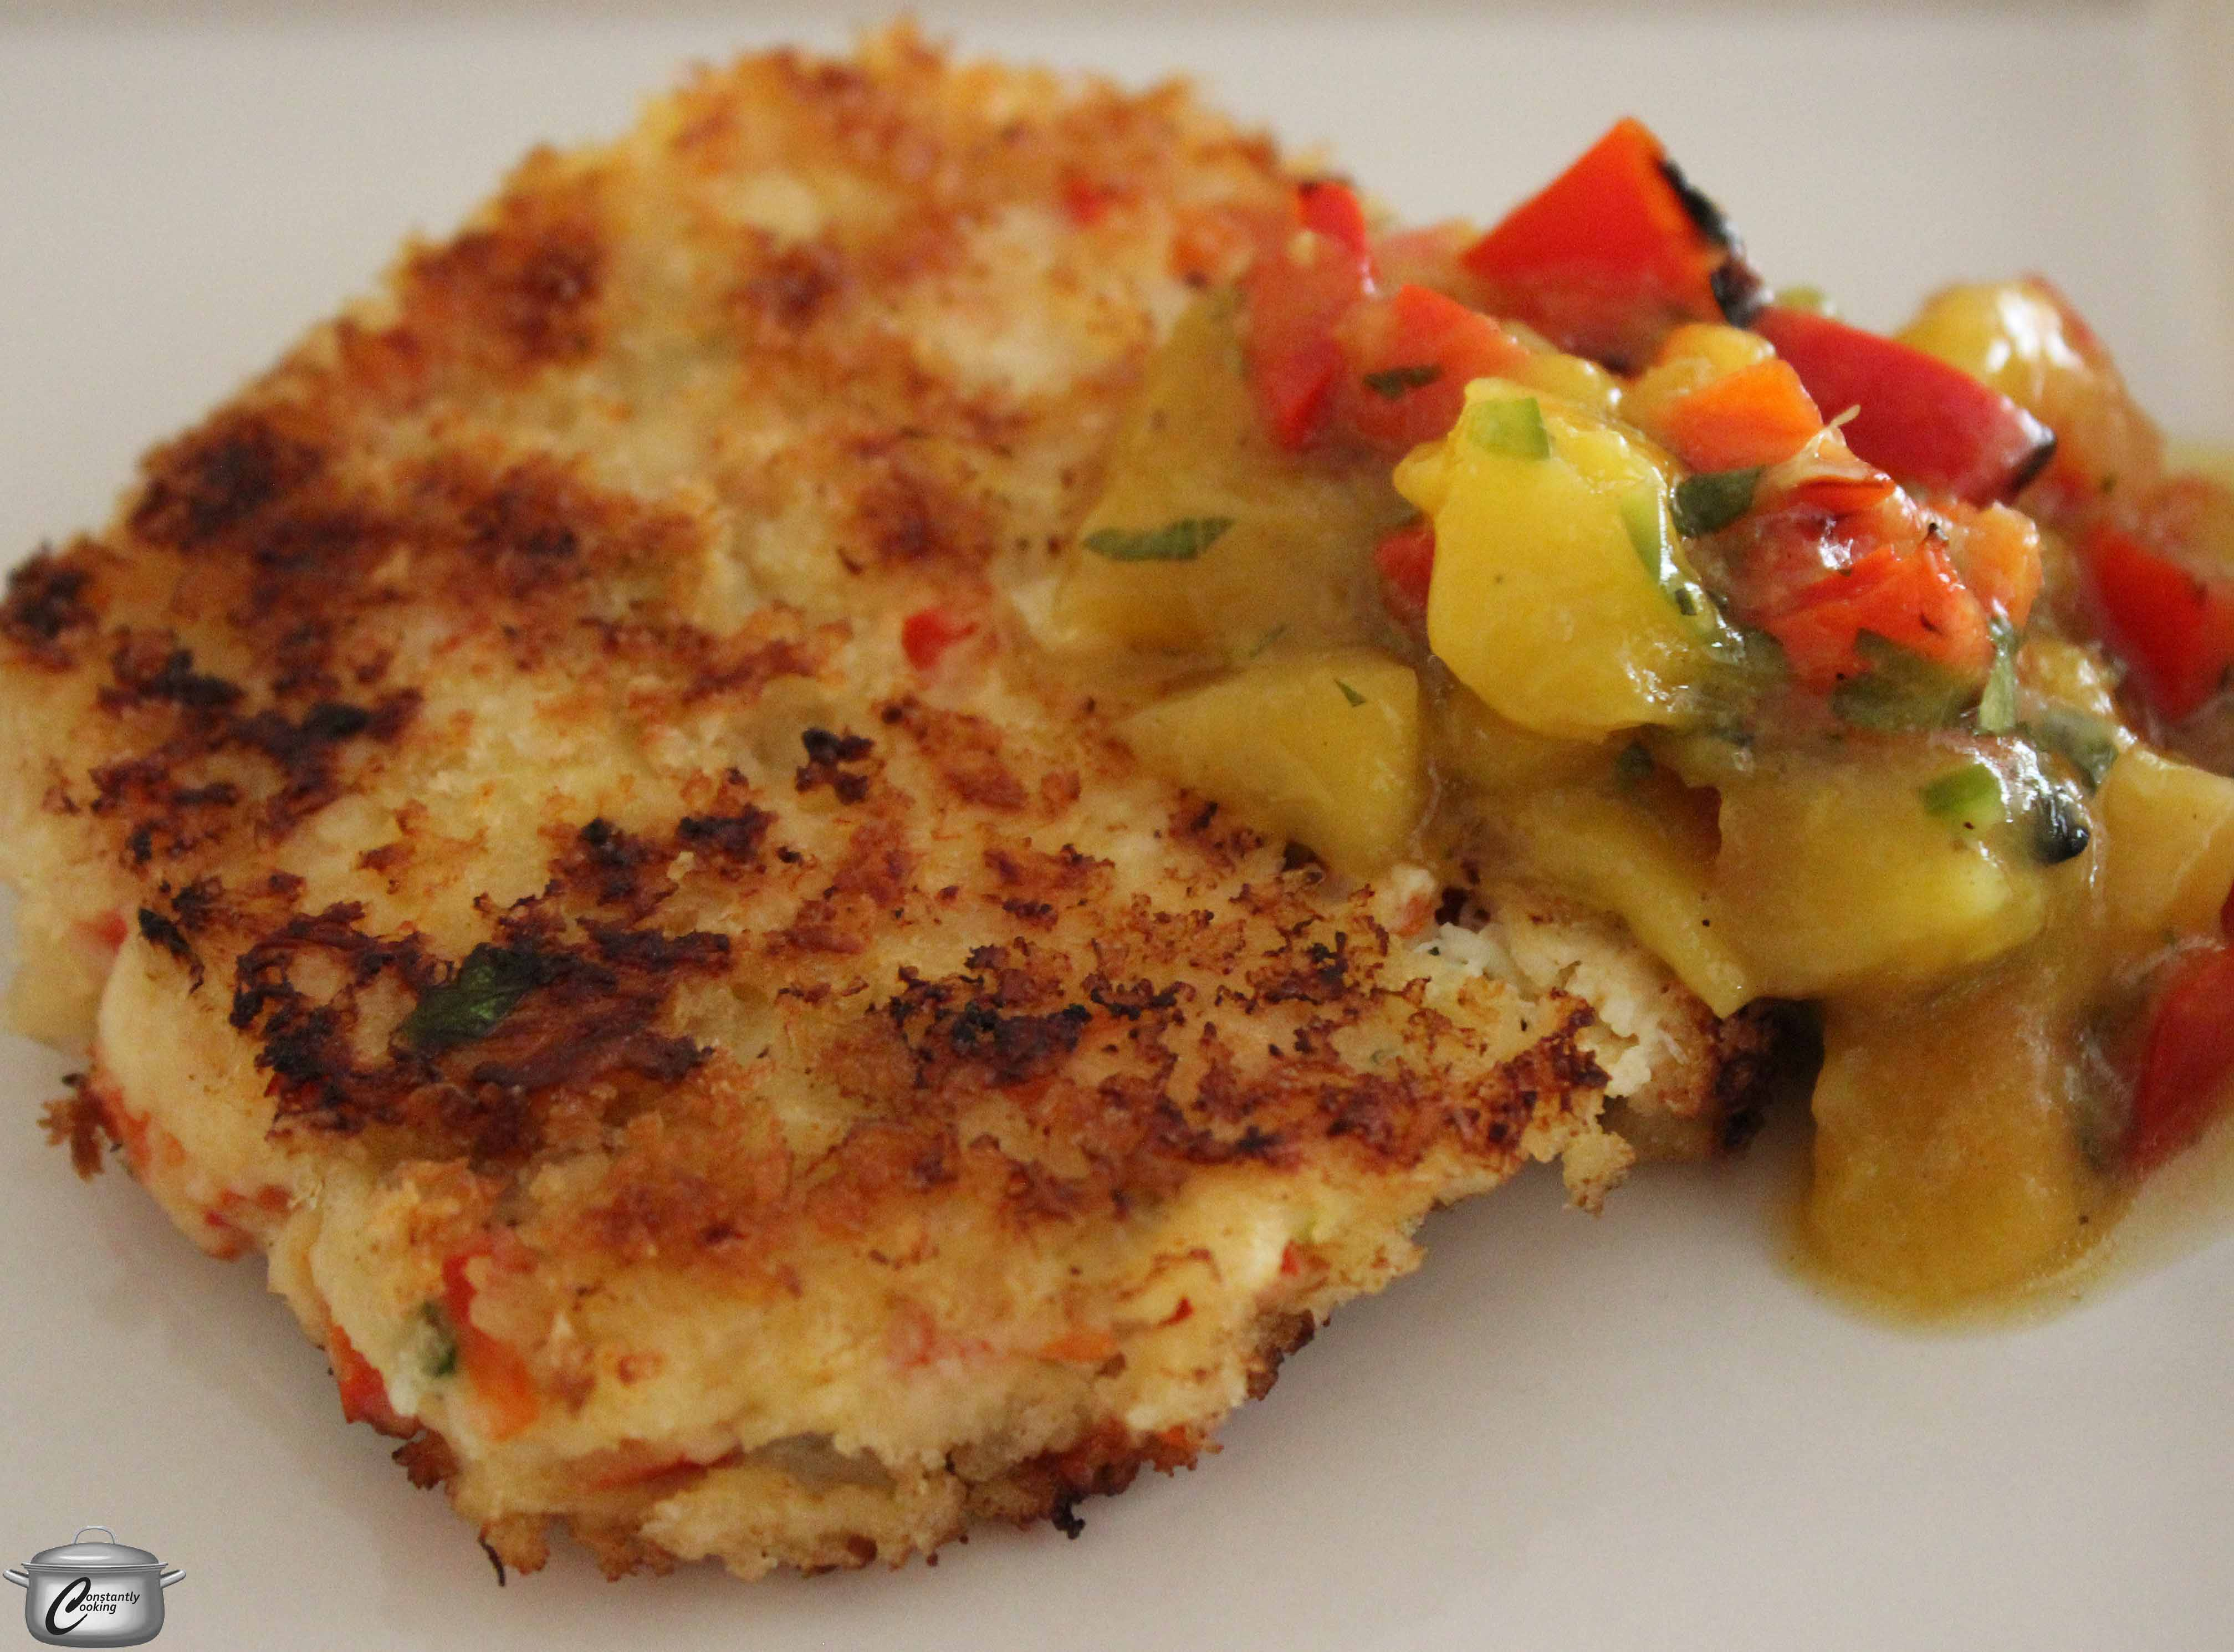 Canned Crab Meat Crab Cakes